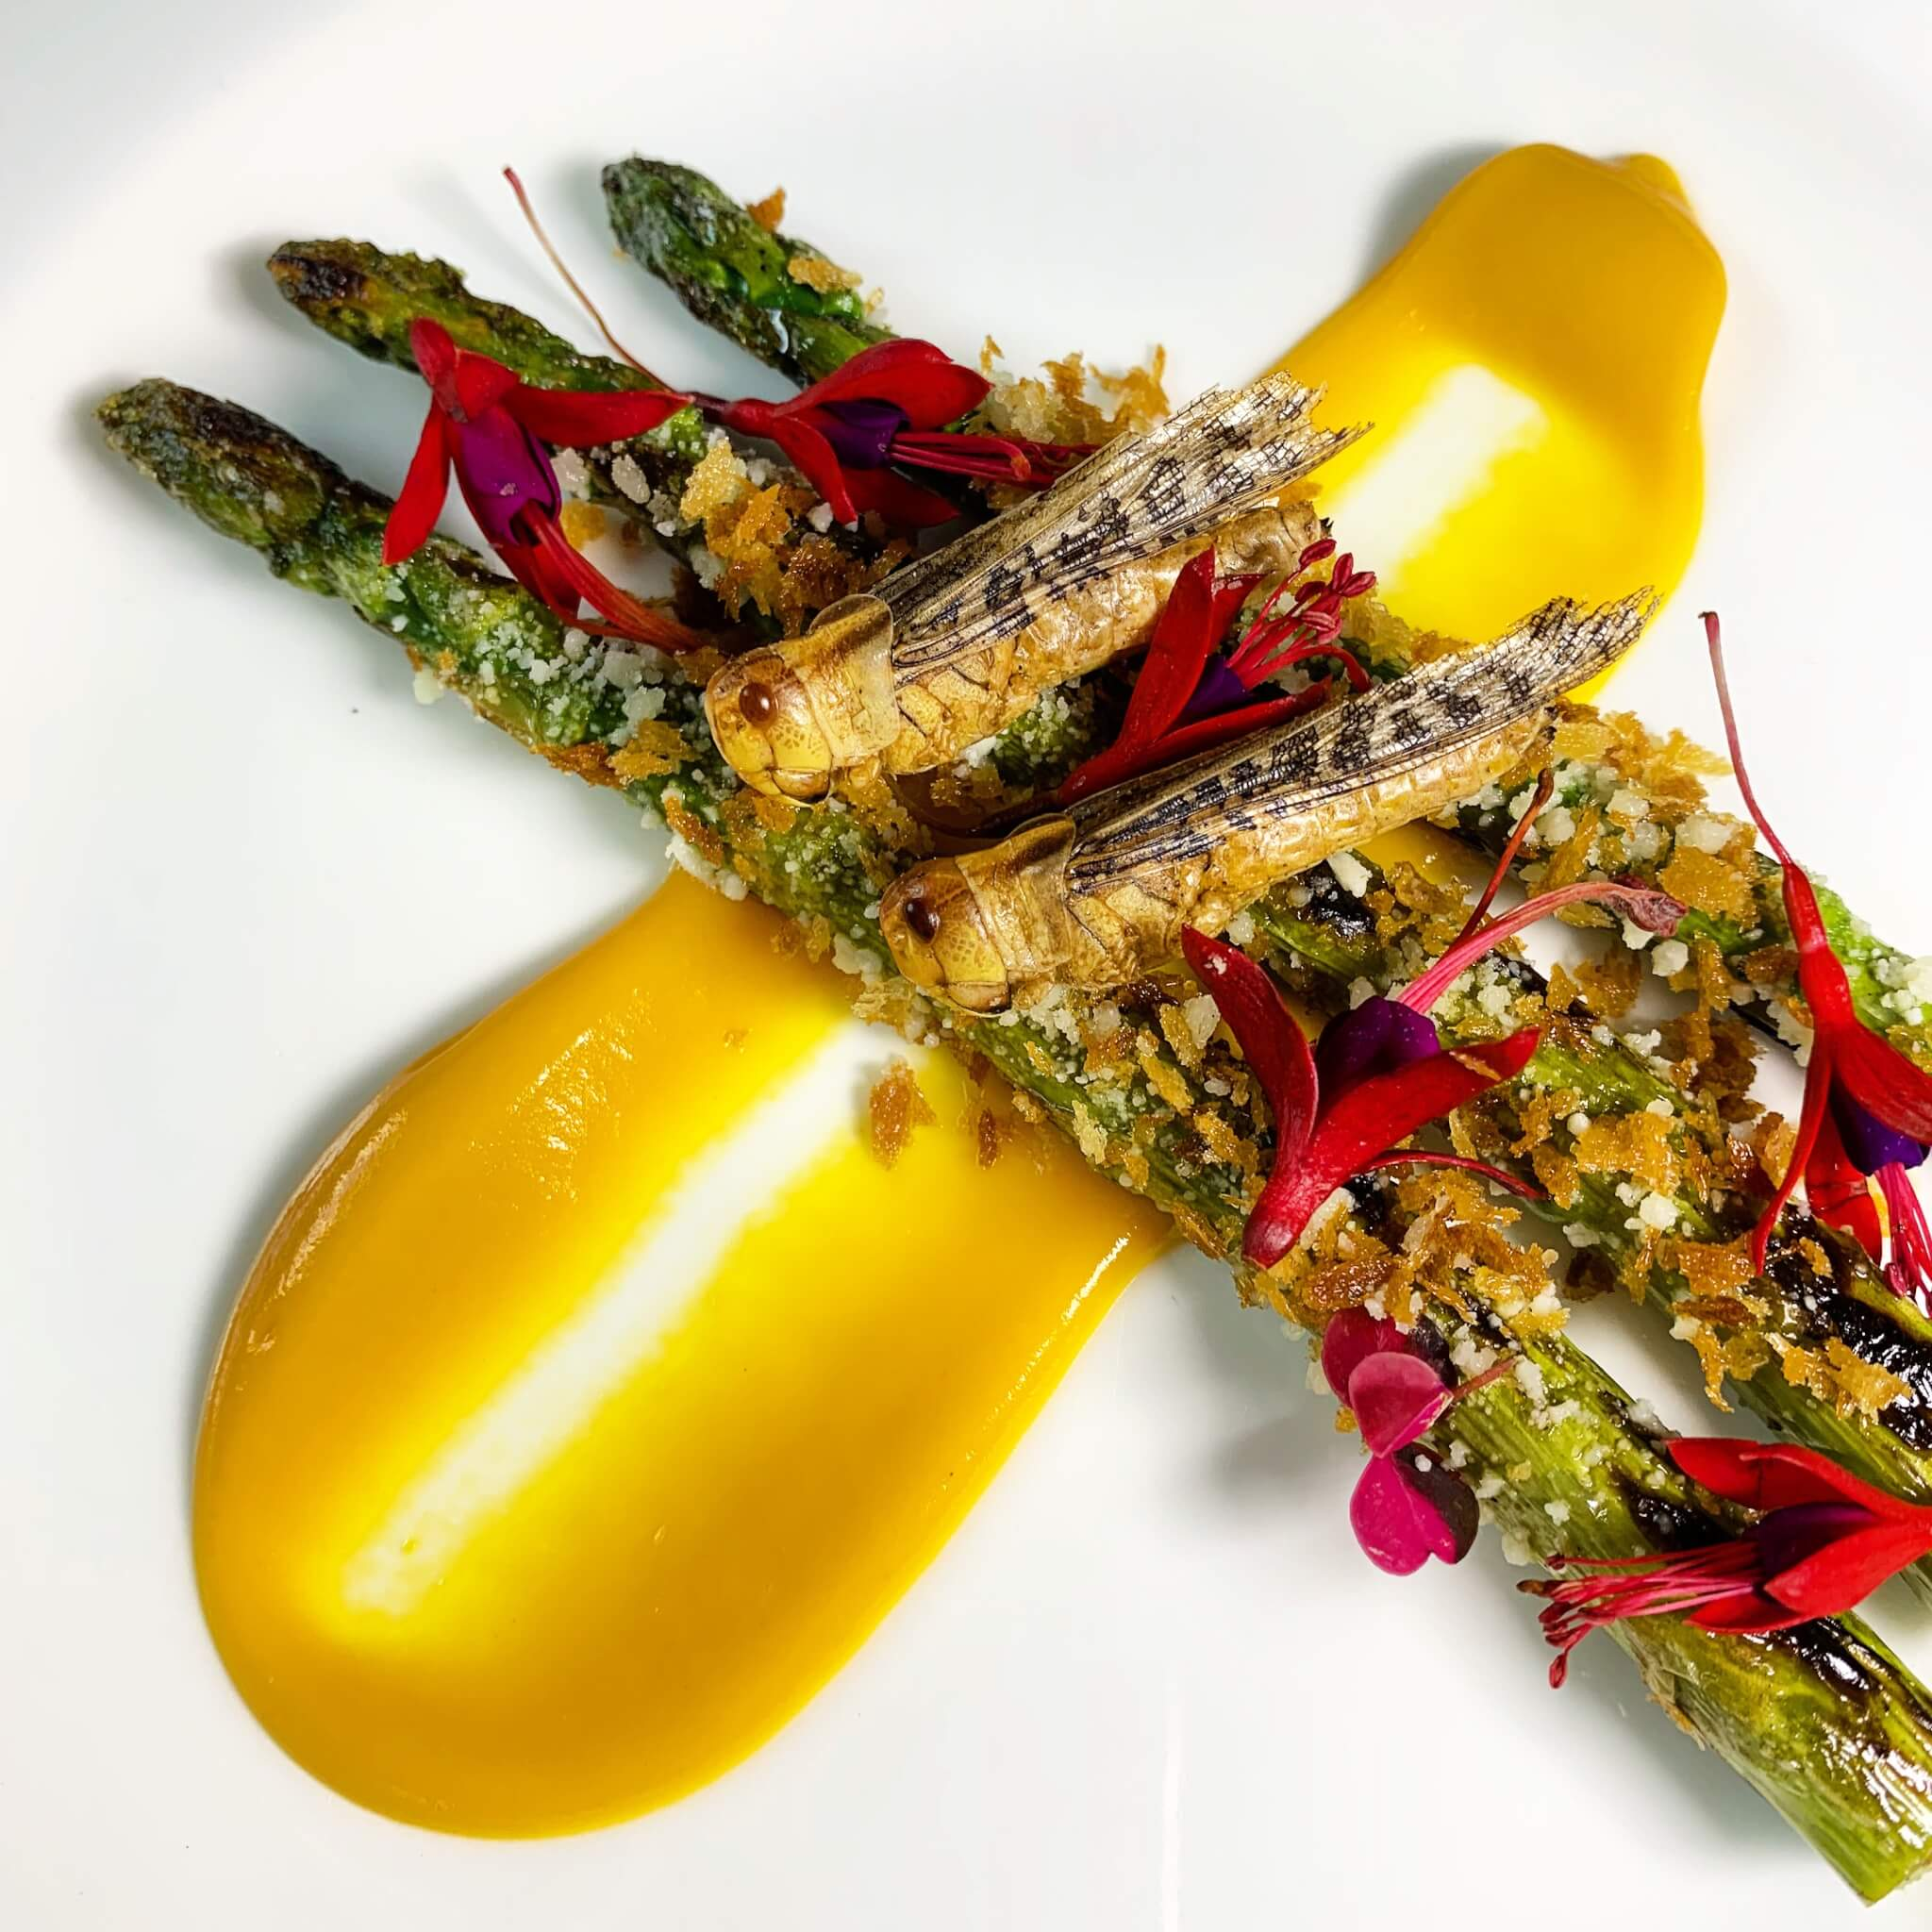 This locus asparagus is one of the many dishes prepared by Yoon with edible insects.